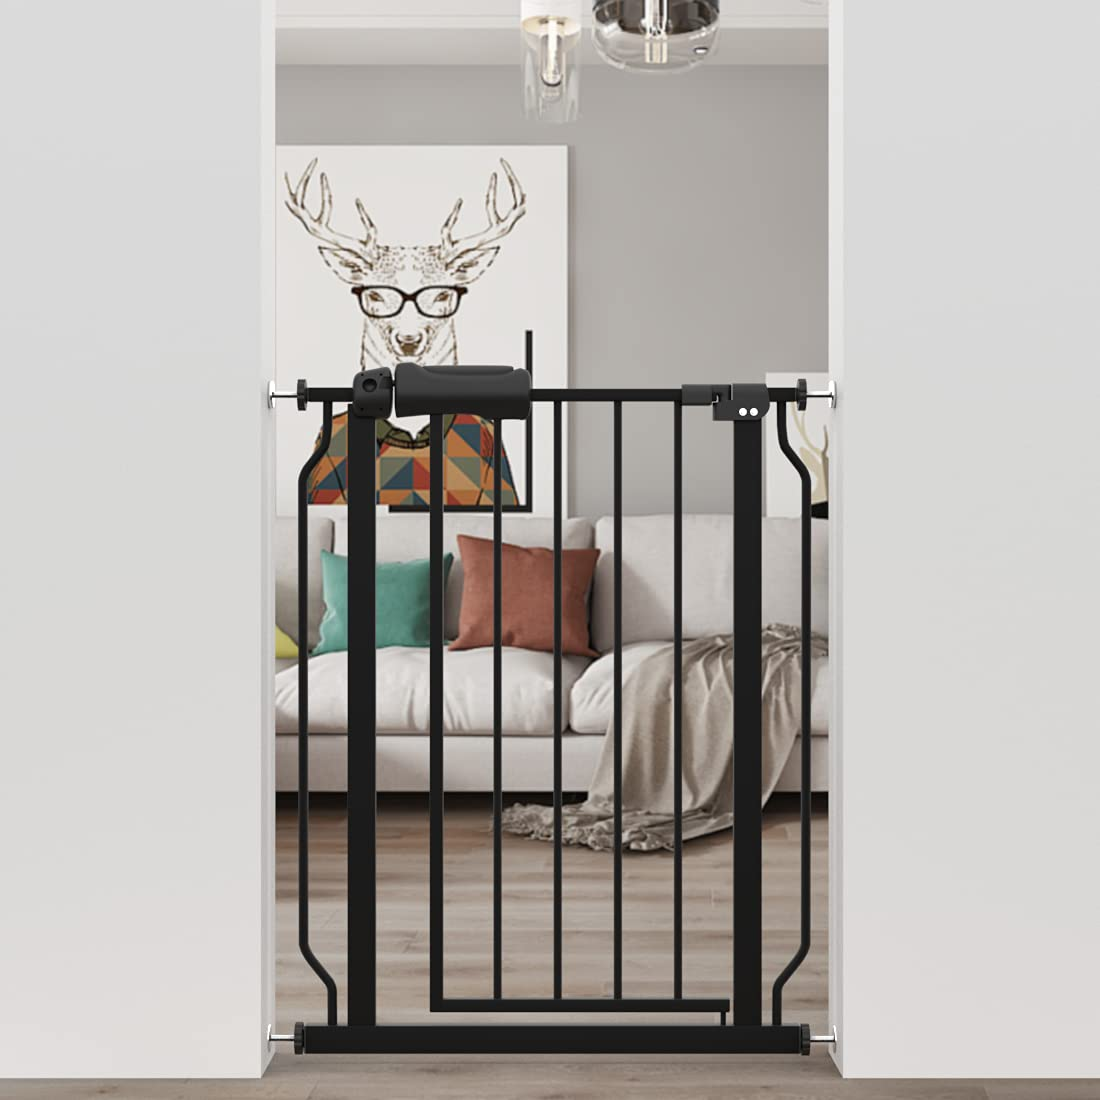 WAOWAO Baby Gate Narrow Pressure Mounted Walk Through Swing Auto Close Safety Black Metal Dog Pet Puppy Cat for Stairs,Doorways,Kitchen 24.02-29.13 inch (24.02-29.13/61-74cm)